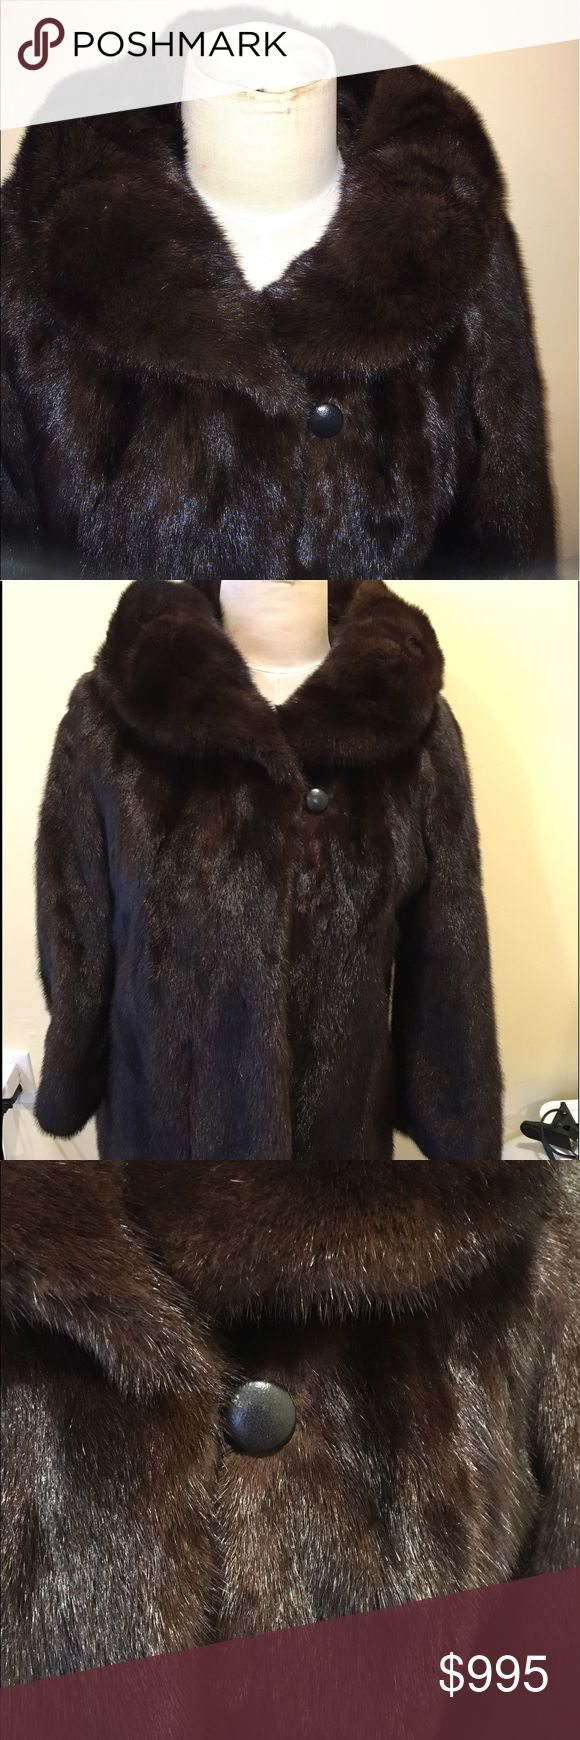 """Ruche Collar Brown Mid Length Mink Coat Vintage Long Sleeve Brown Mink Coat 